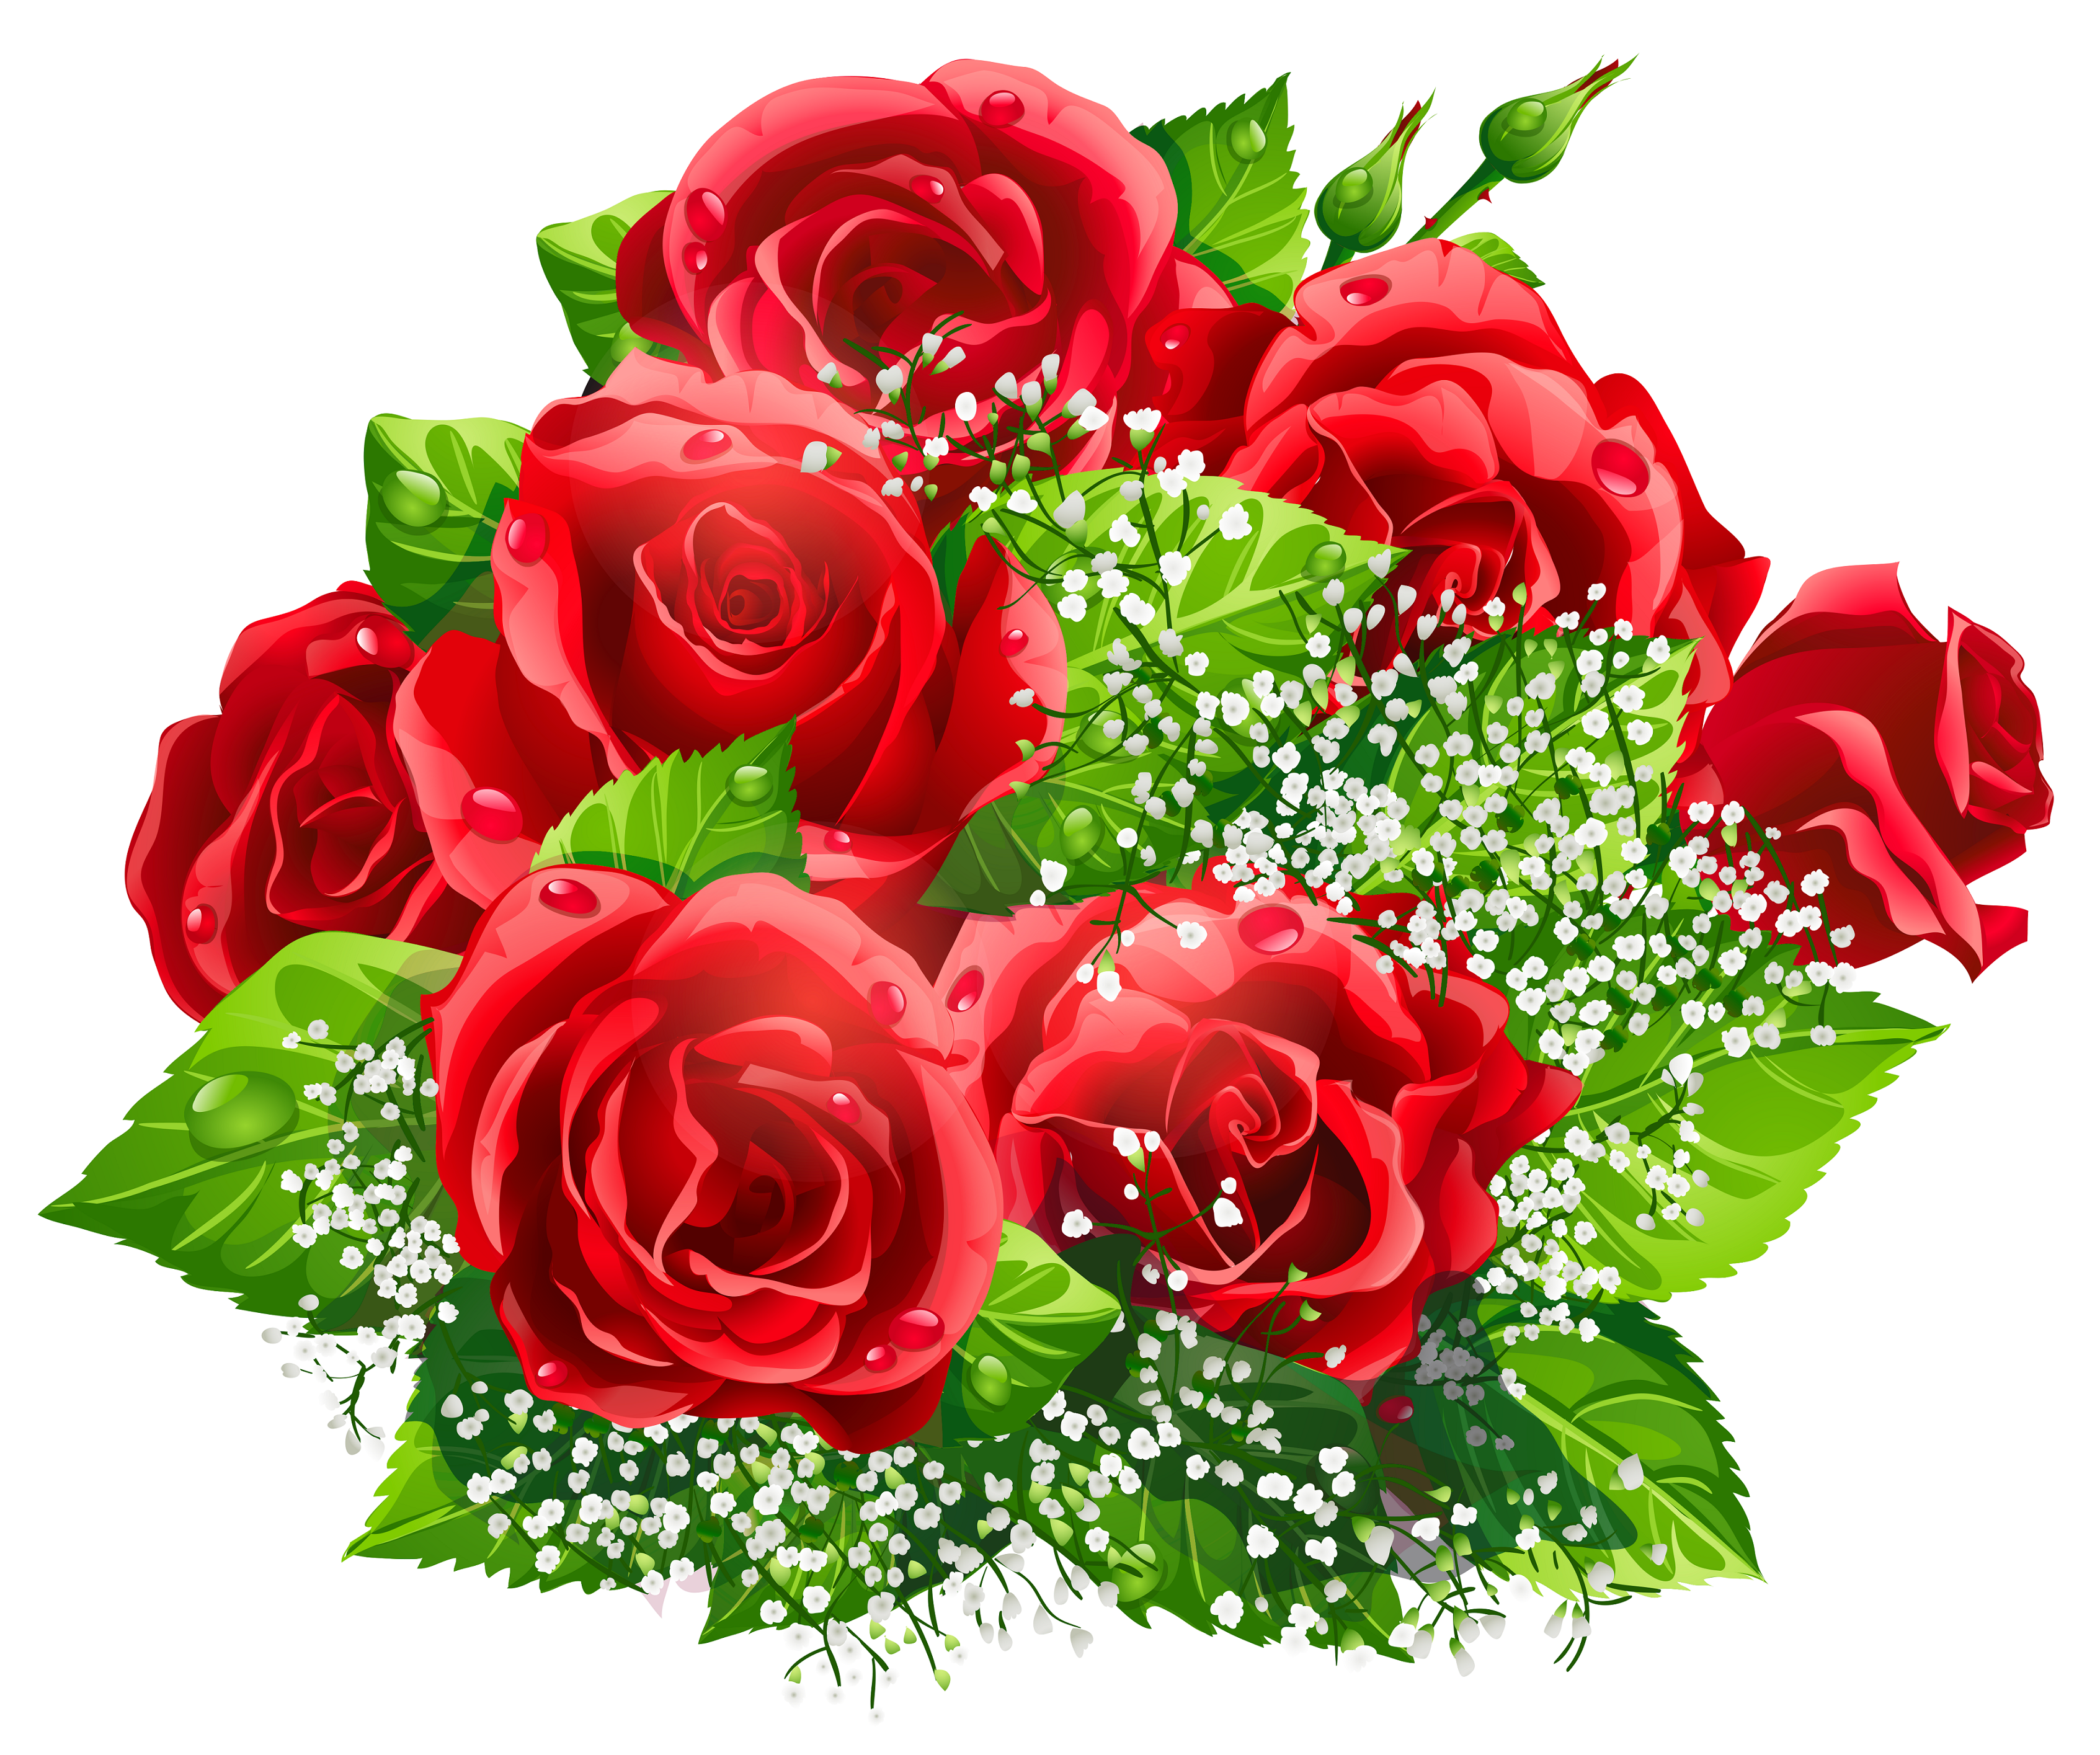 Bouquet of roses clipart clipart download Red Roses Bouquet clipart   Clip Art Everyday for Cards ... clipart download